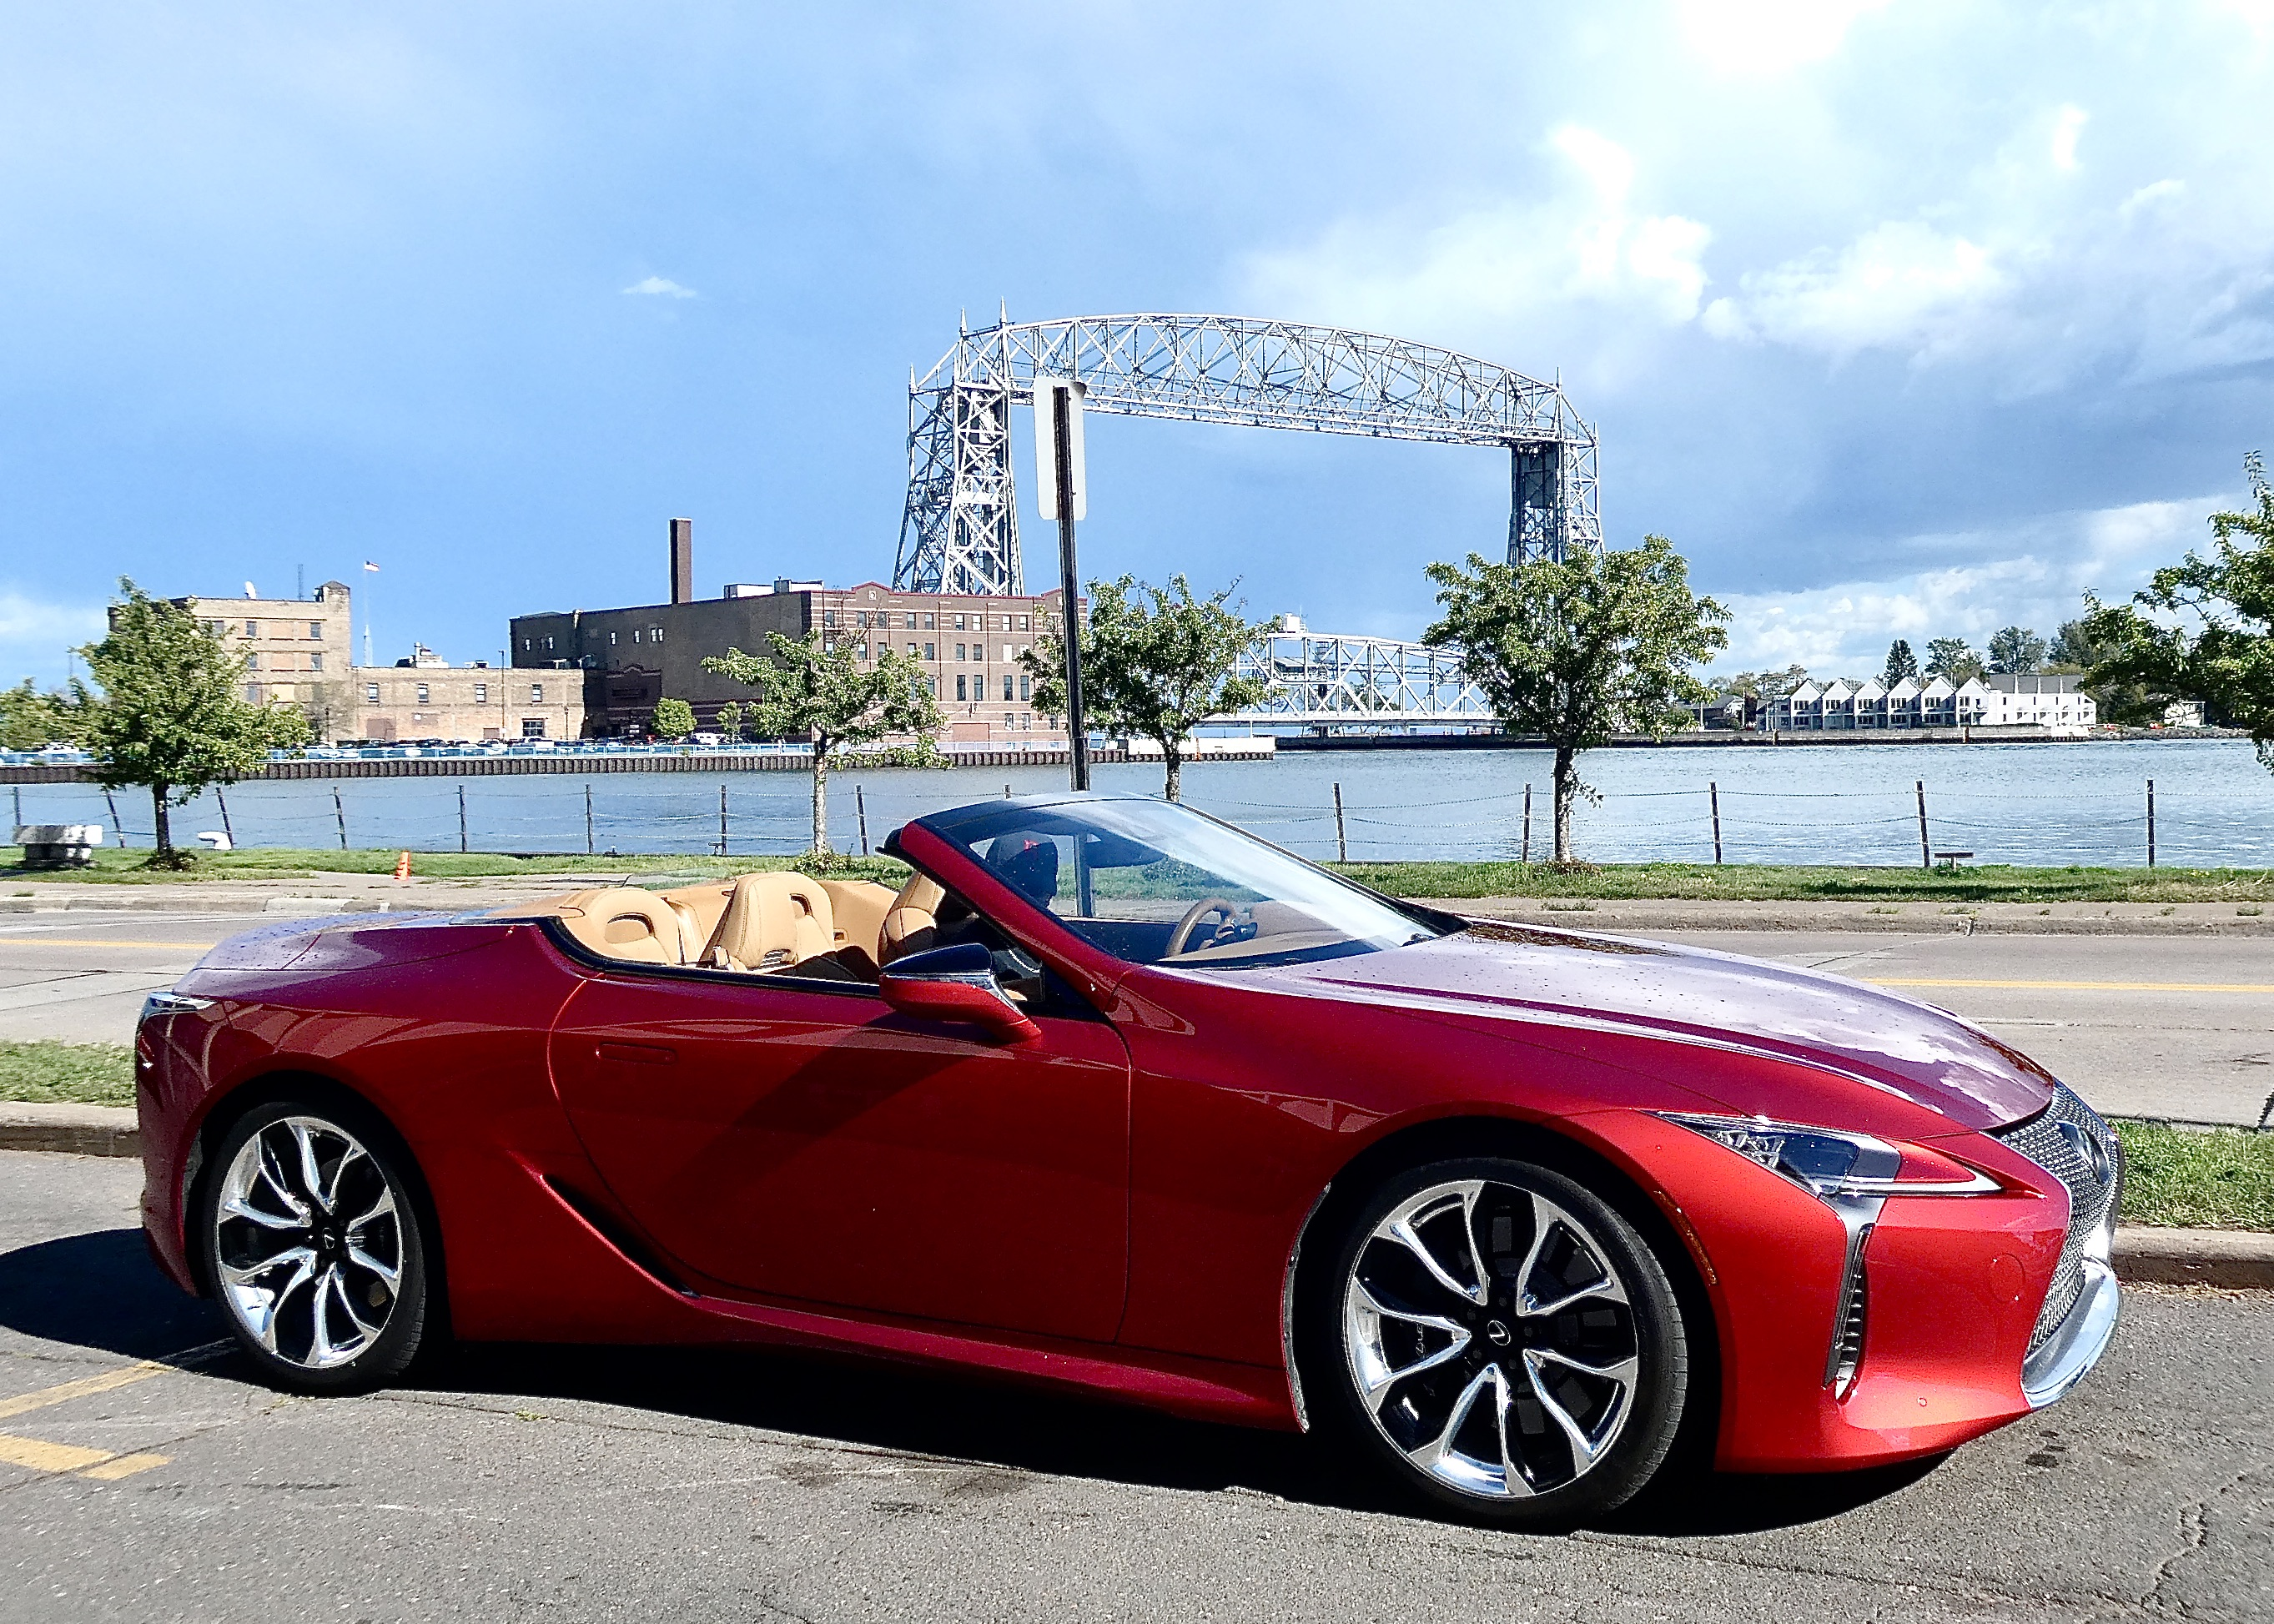 Stealing the appeal of Duluth's Aerial Bridge, the LC500 is at home anywhere.